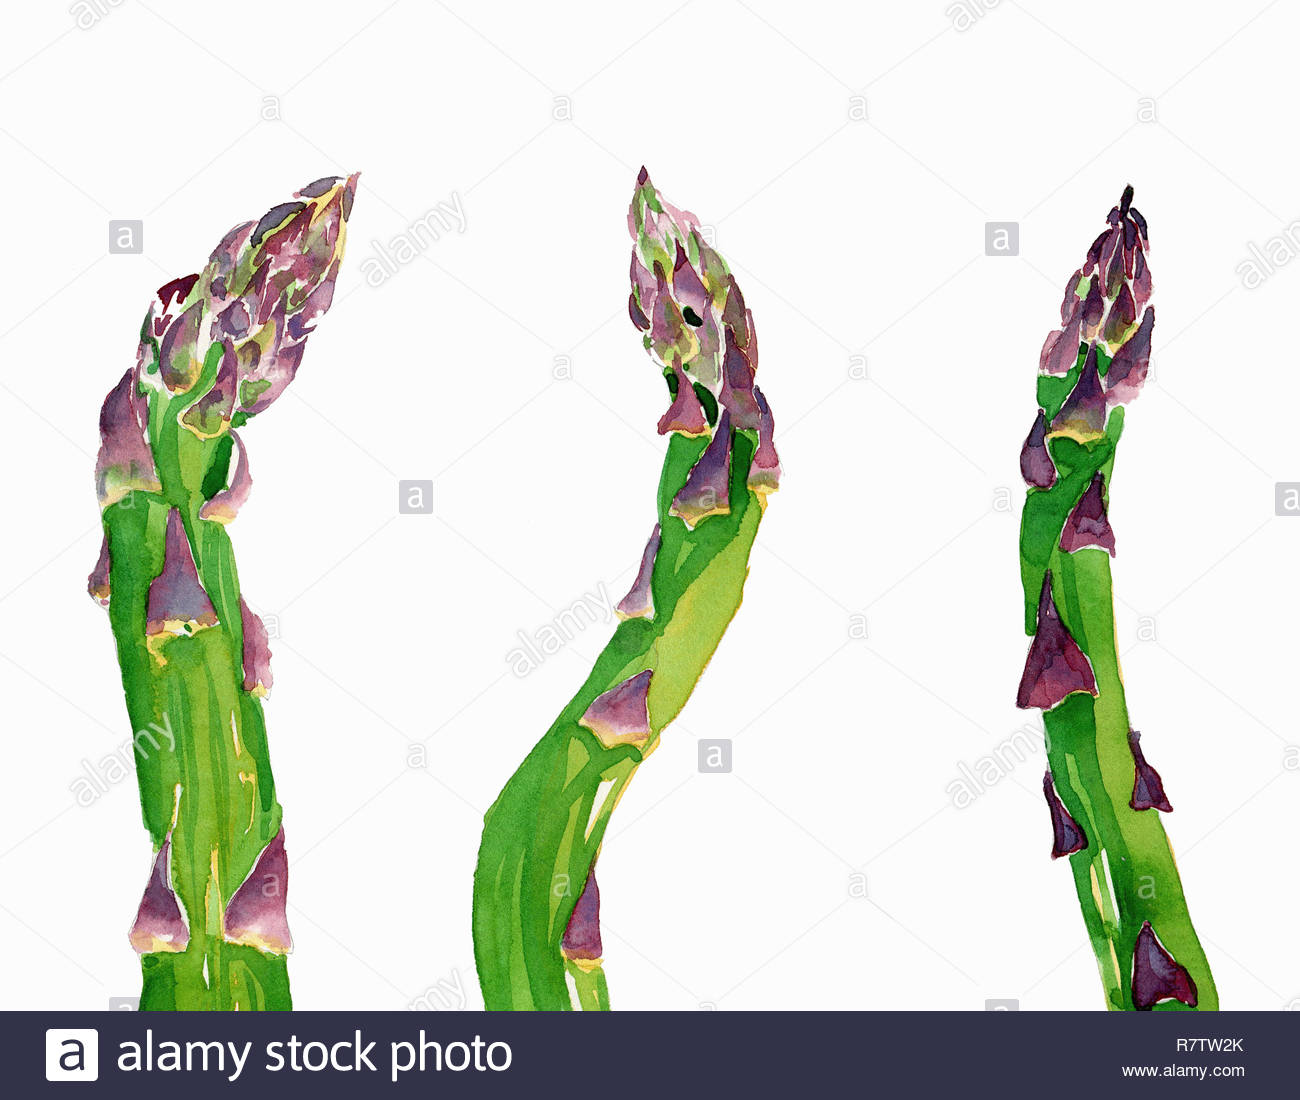 Watercolor painting of fresh asparagus spears Stock Photo